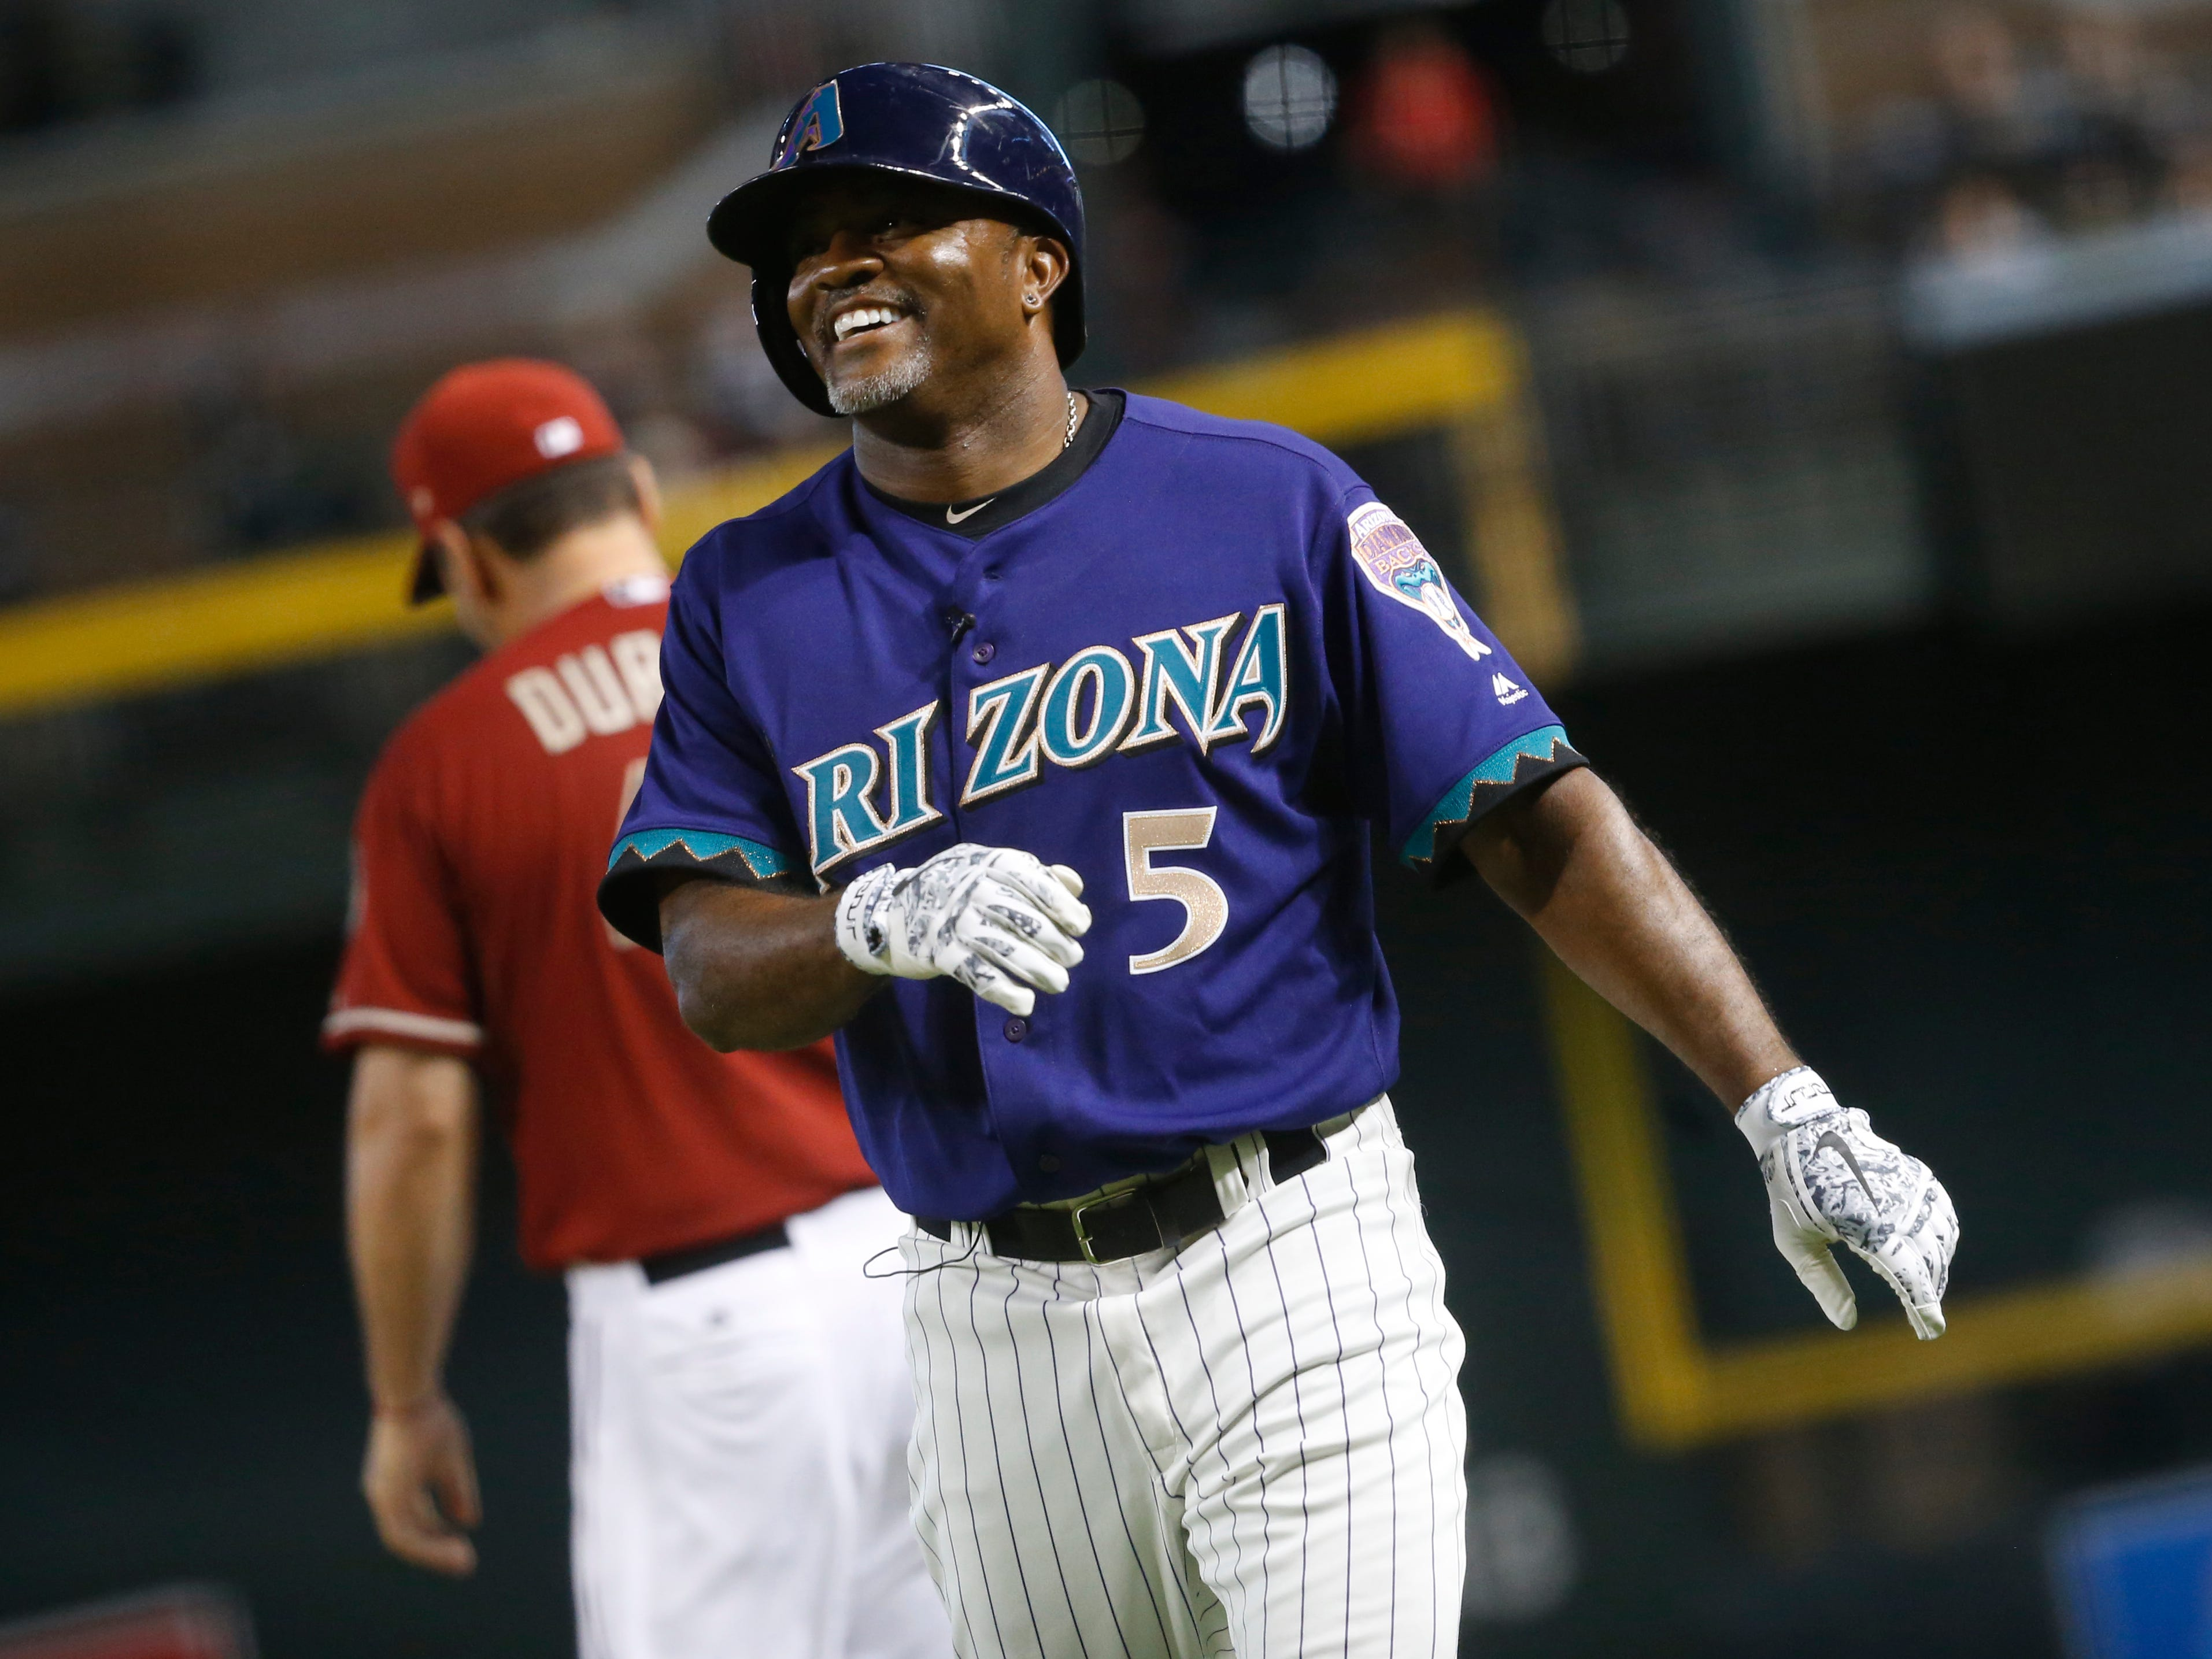 Diamondbacks Purple team's Tony Womack (5) reacts after grounding out against the Red team during the Generations Diamondbacks Alumni game at Chase Field in Phoenix, Ariz. on Aug. 4, 2018.